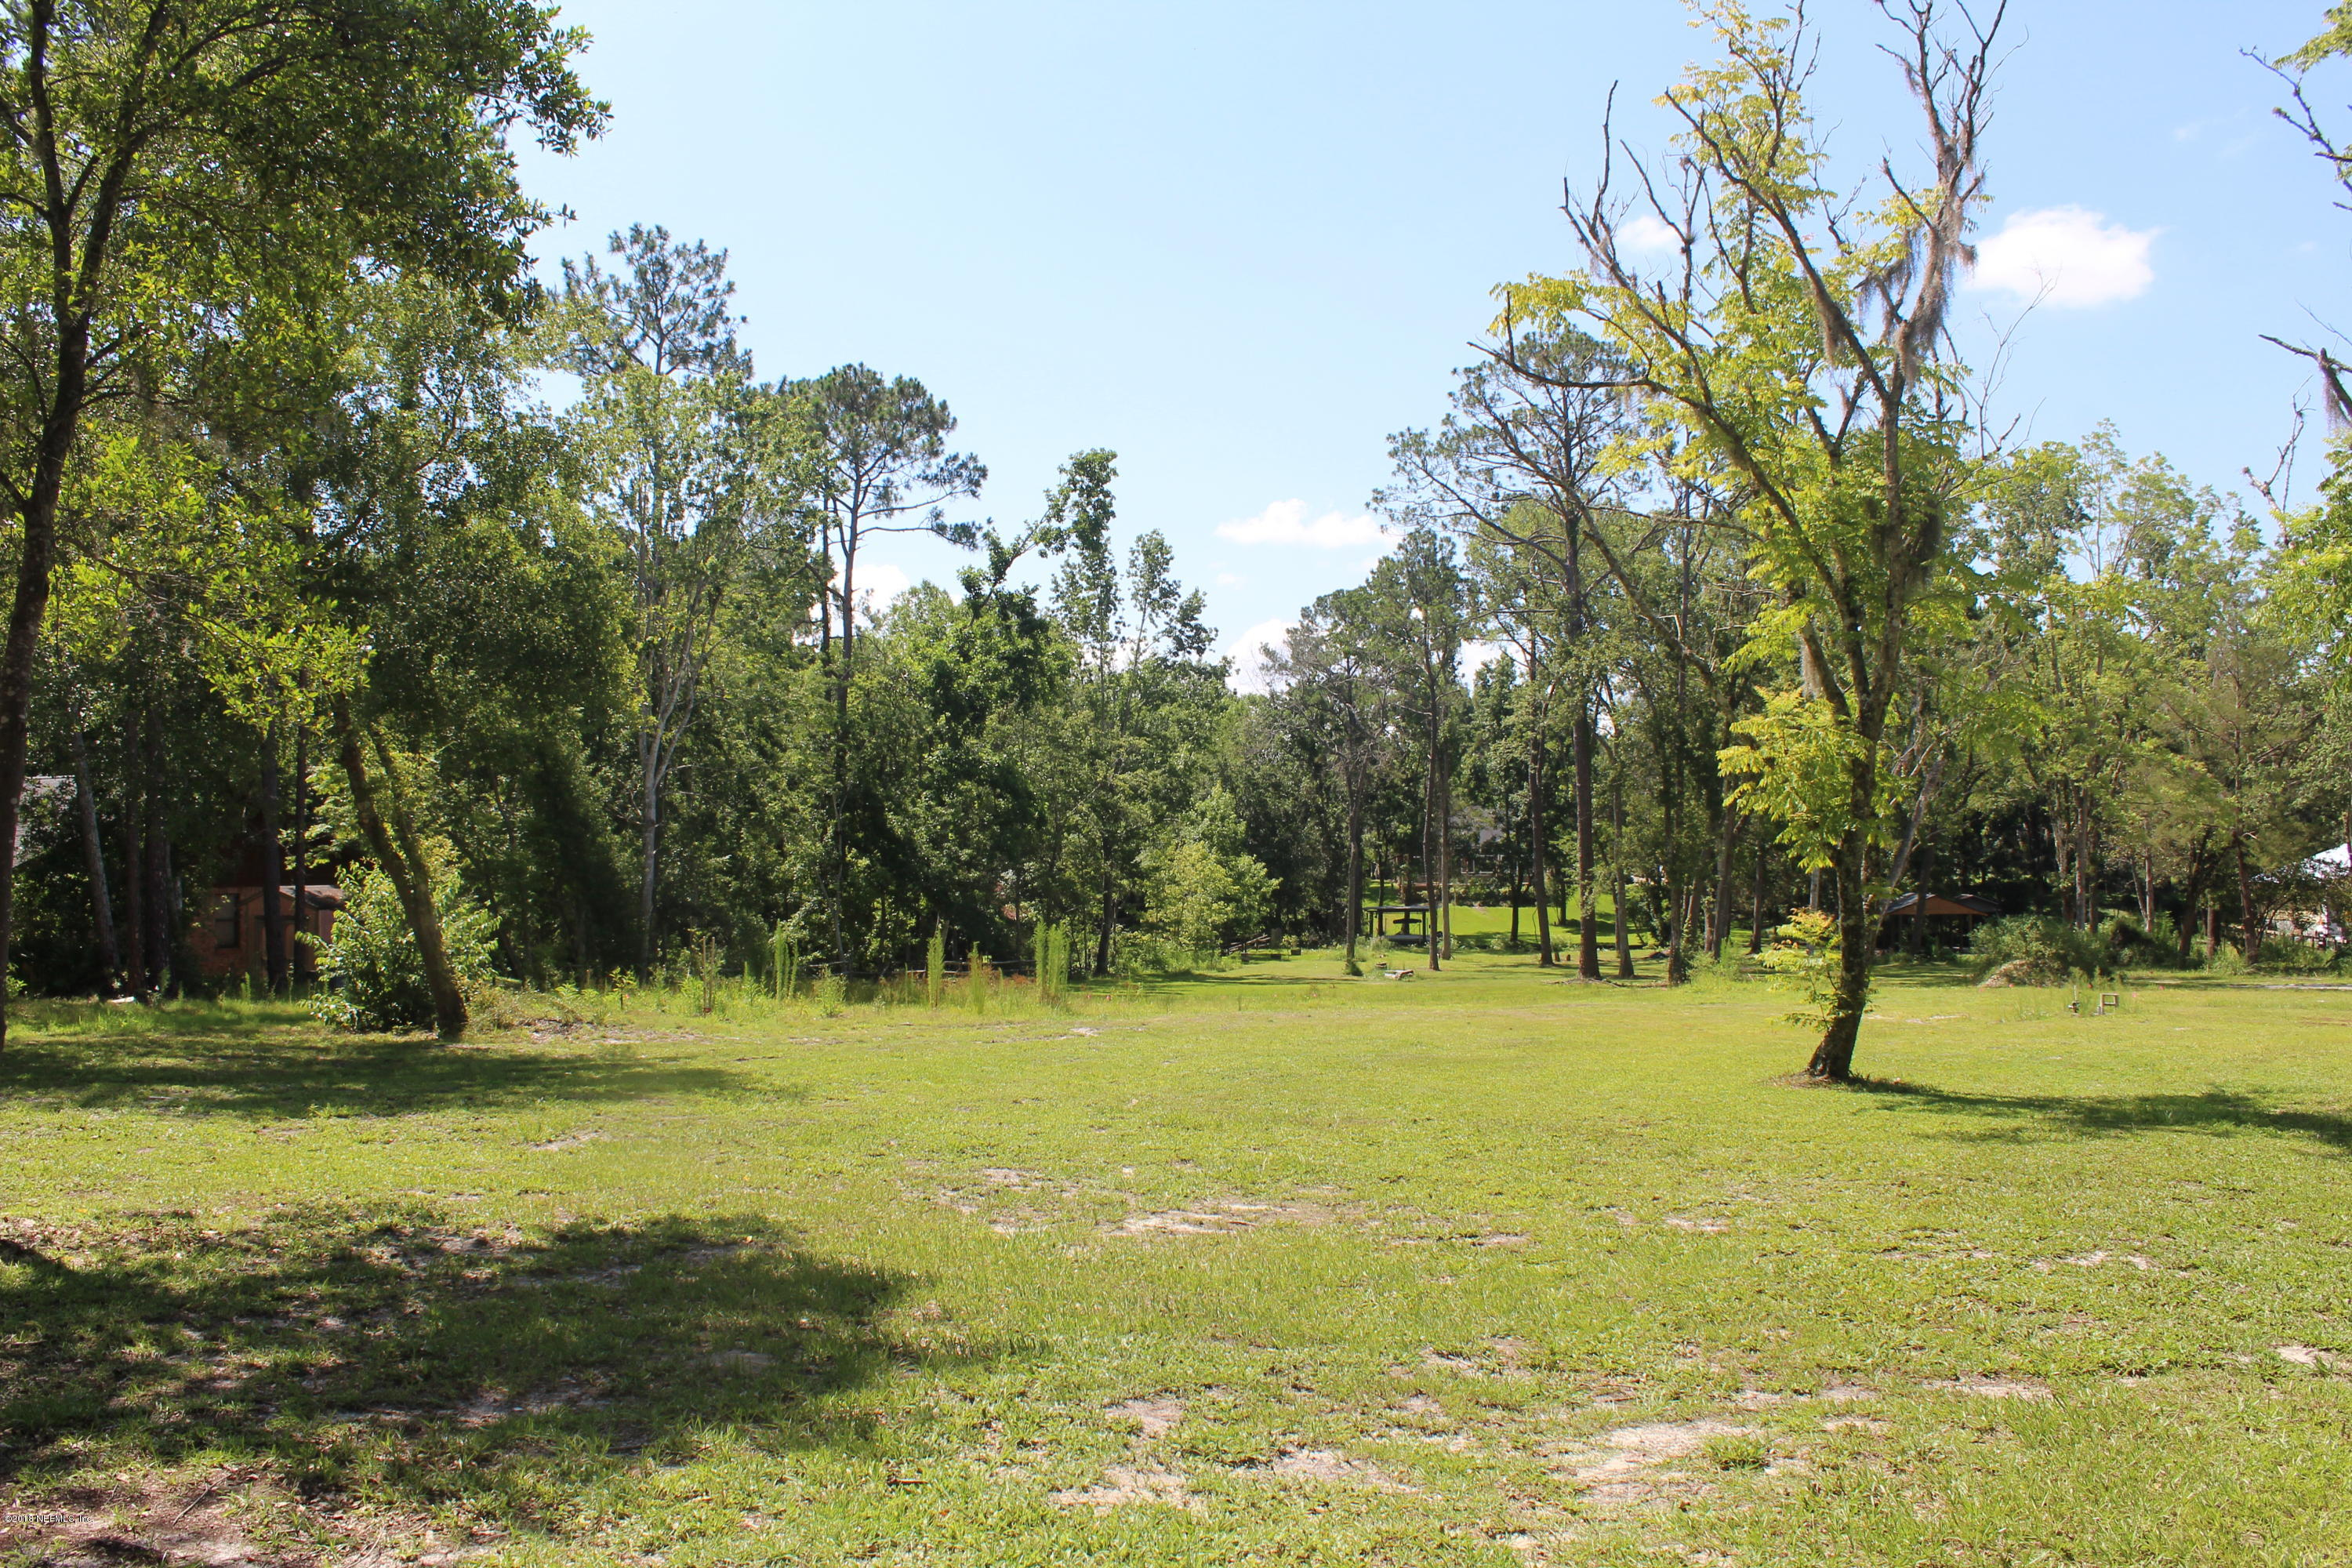 0 JULINGTON CREEK, JACKSONVILLE, FLORIDA 32258, ,Vacant land,For sale,JULINGTON CREEK,920707